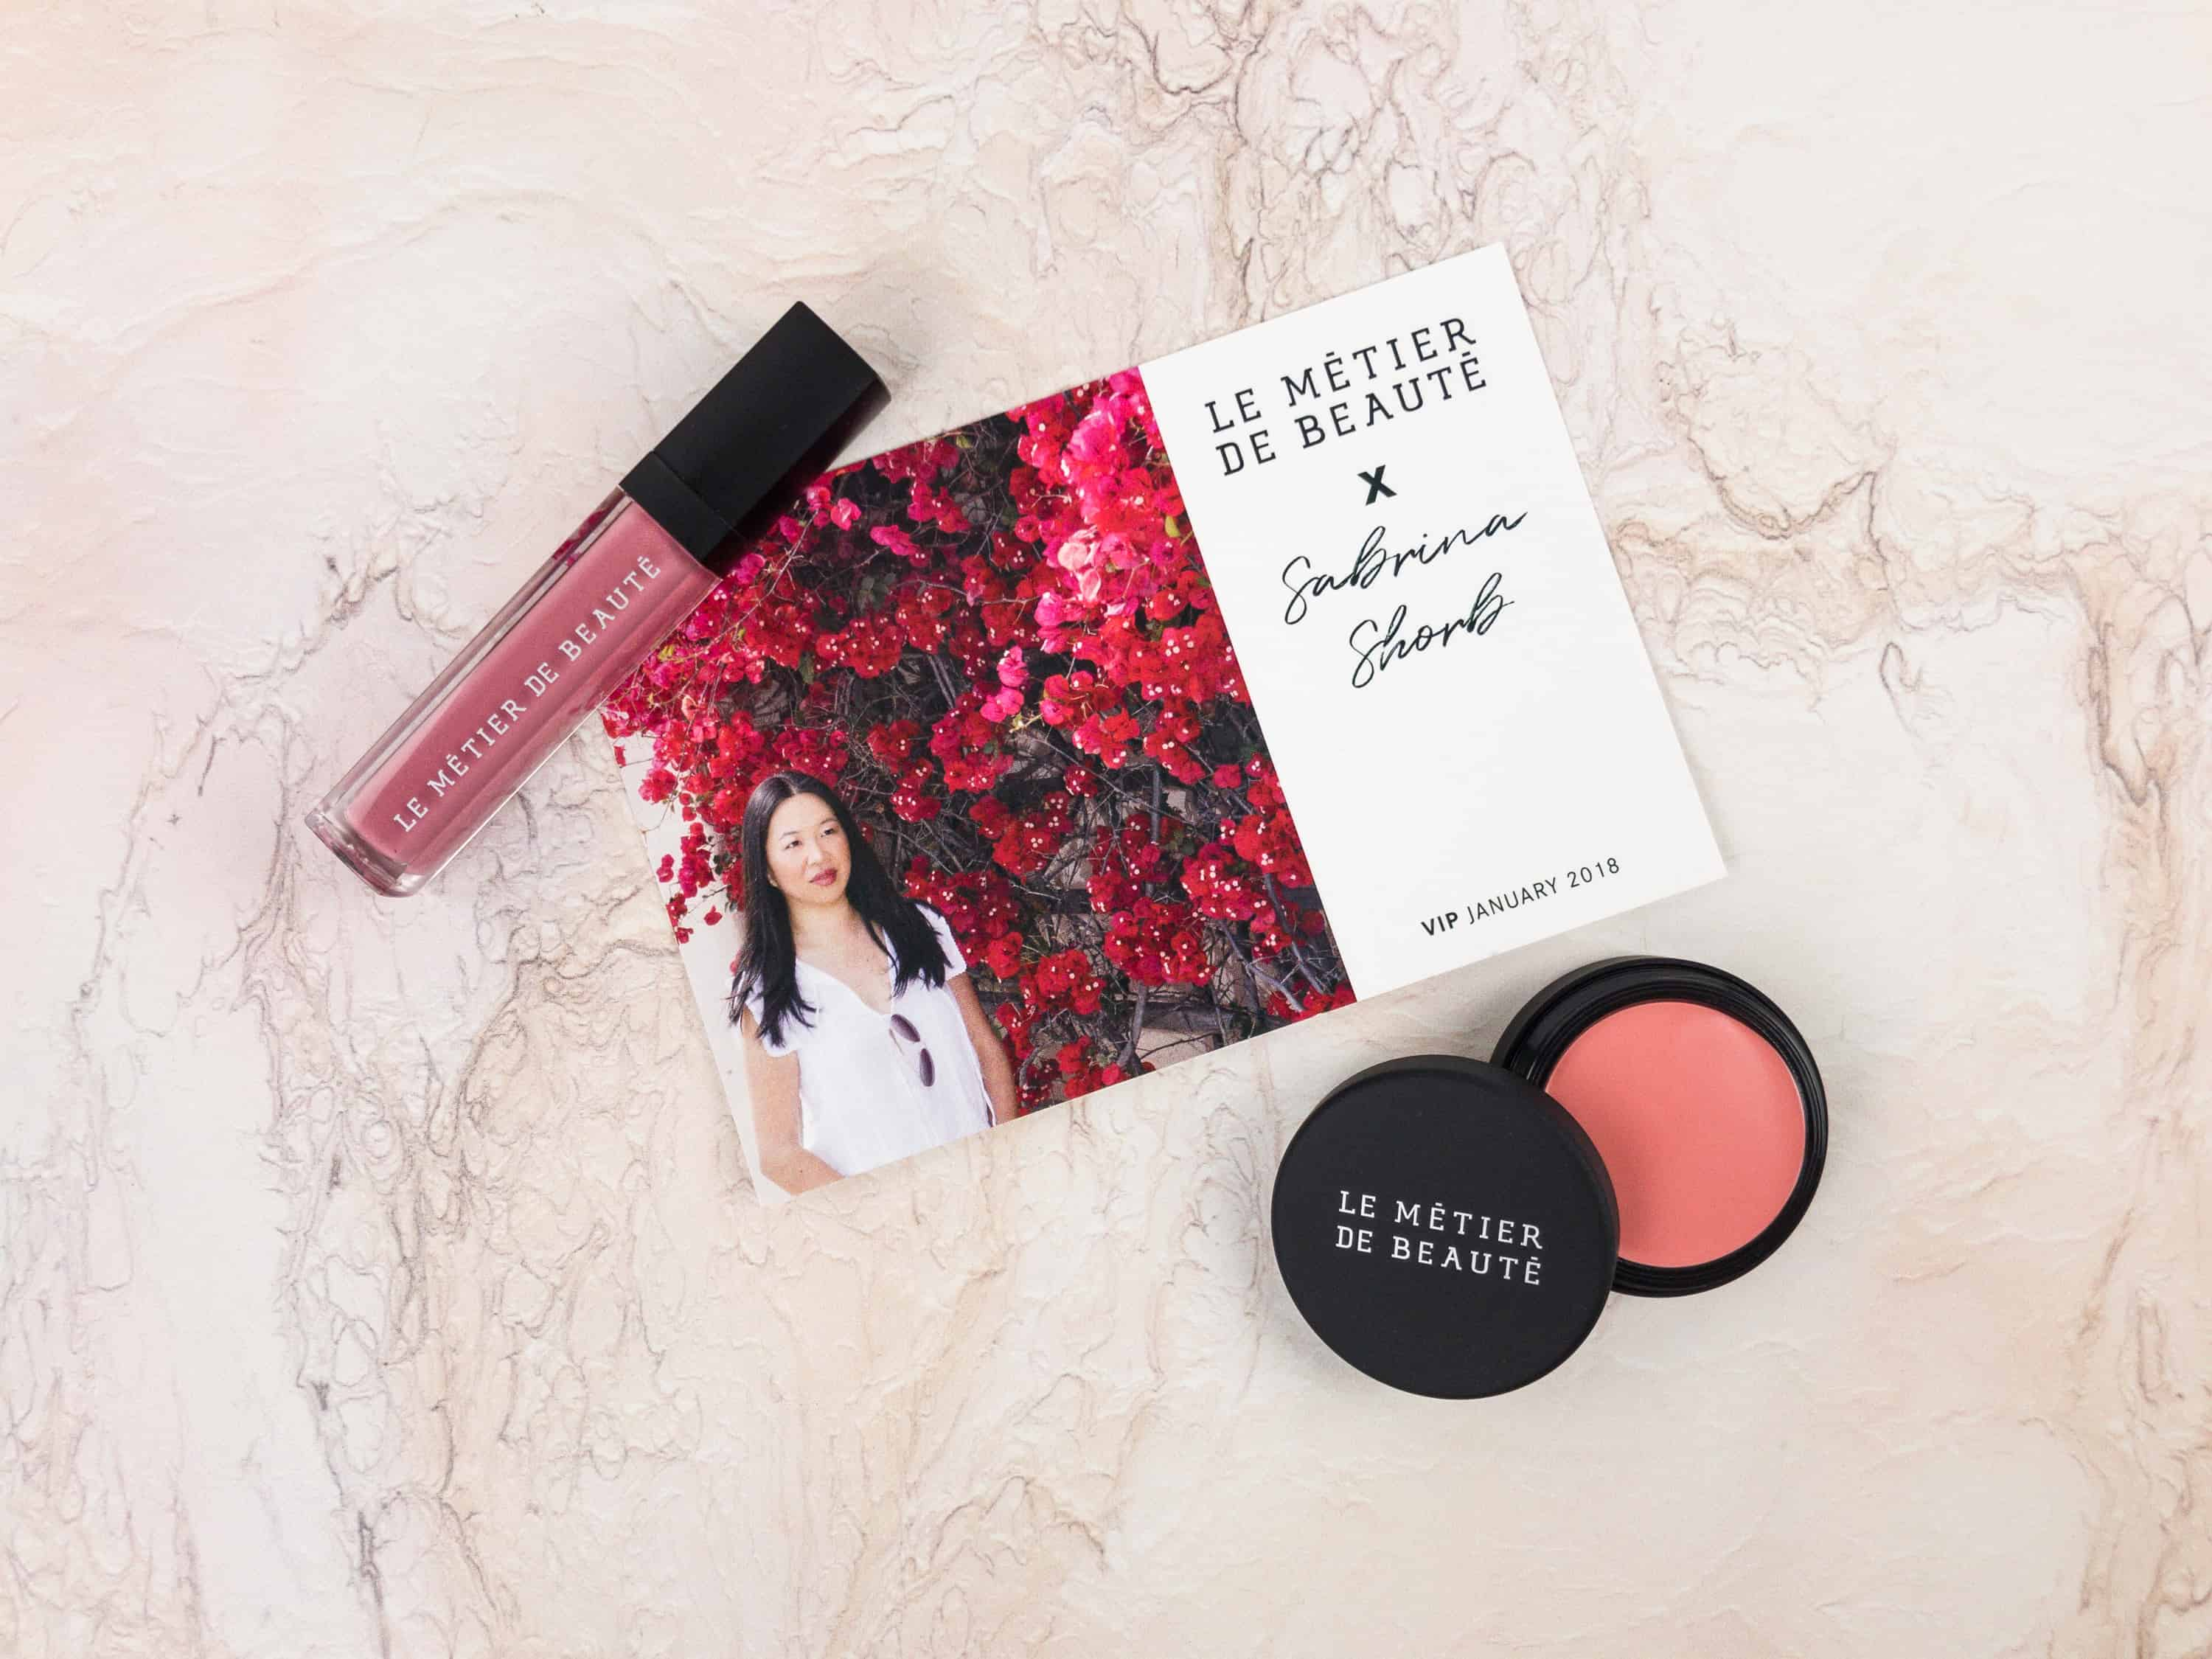 Le Métier de Beauté Beauty Vault VIP Subscription Box Review – January 2018